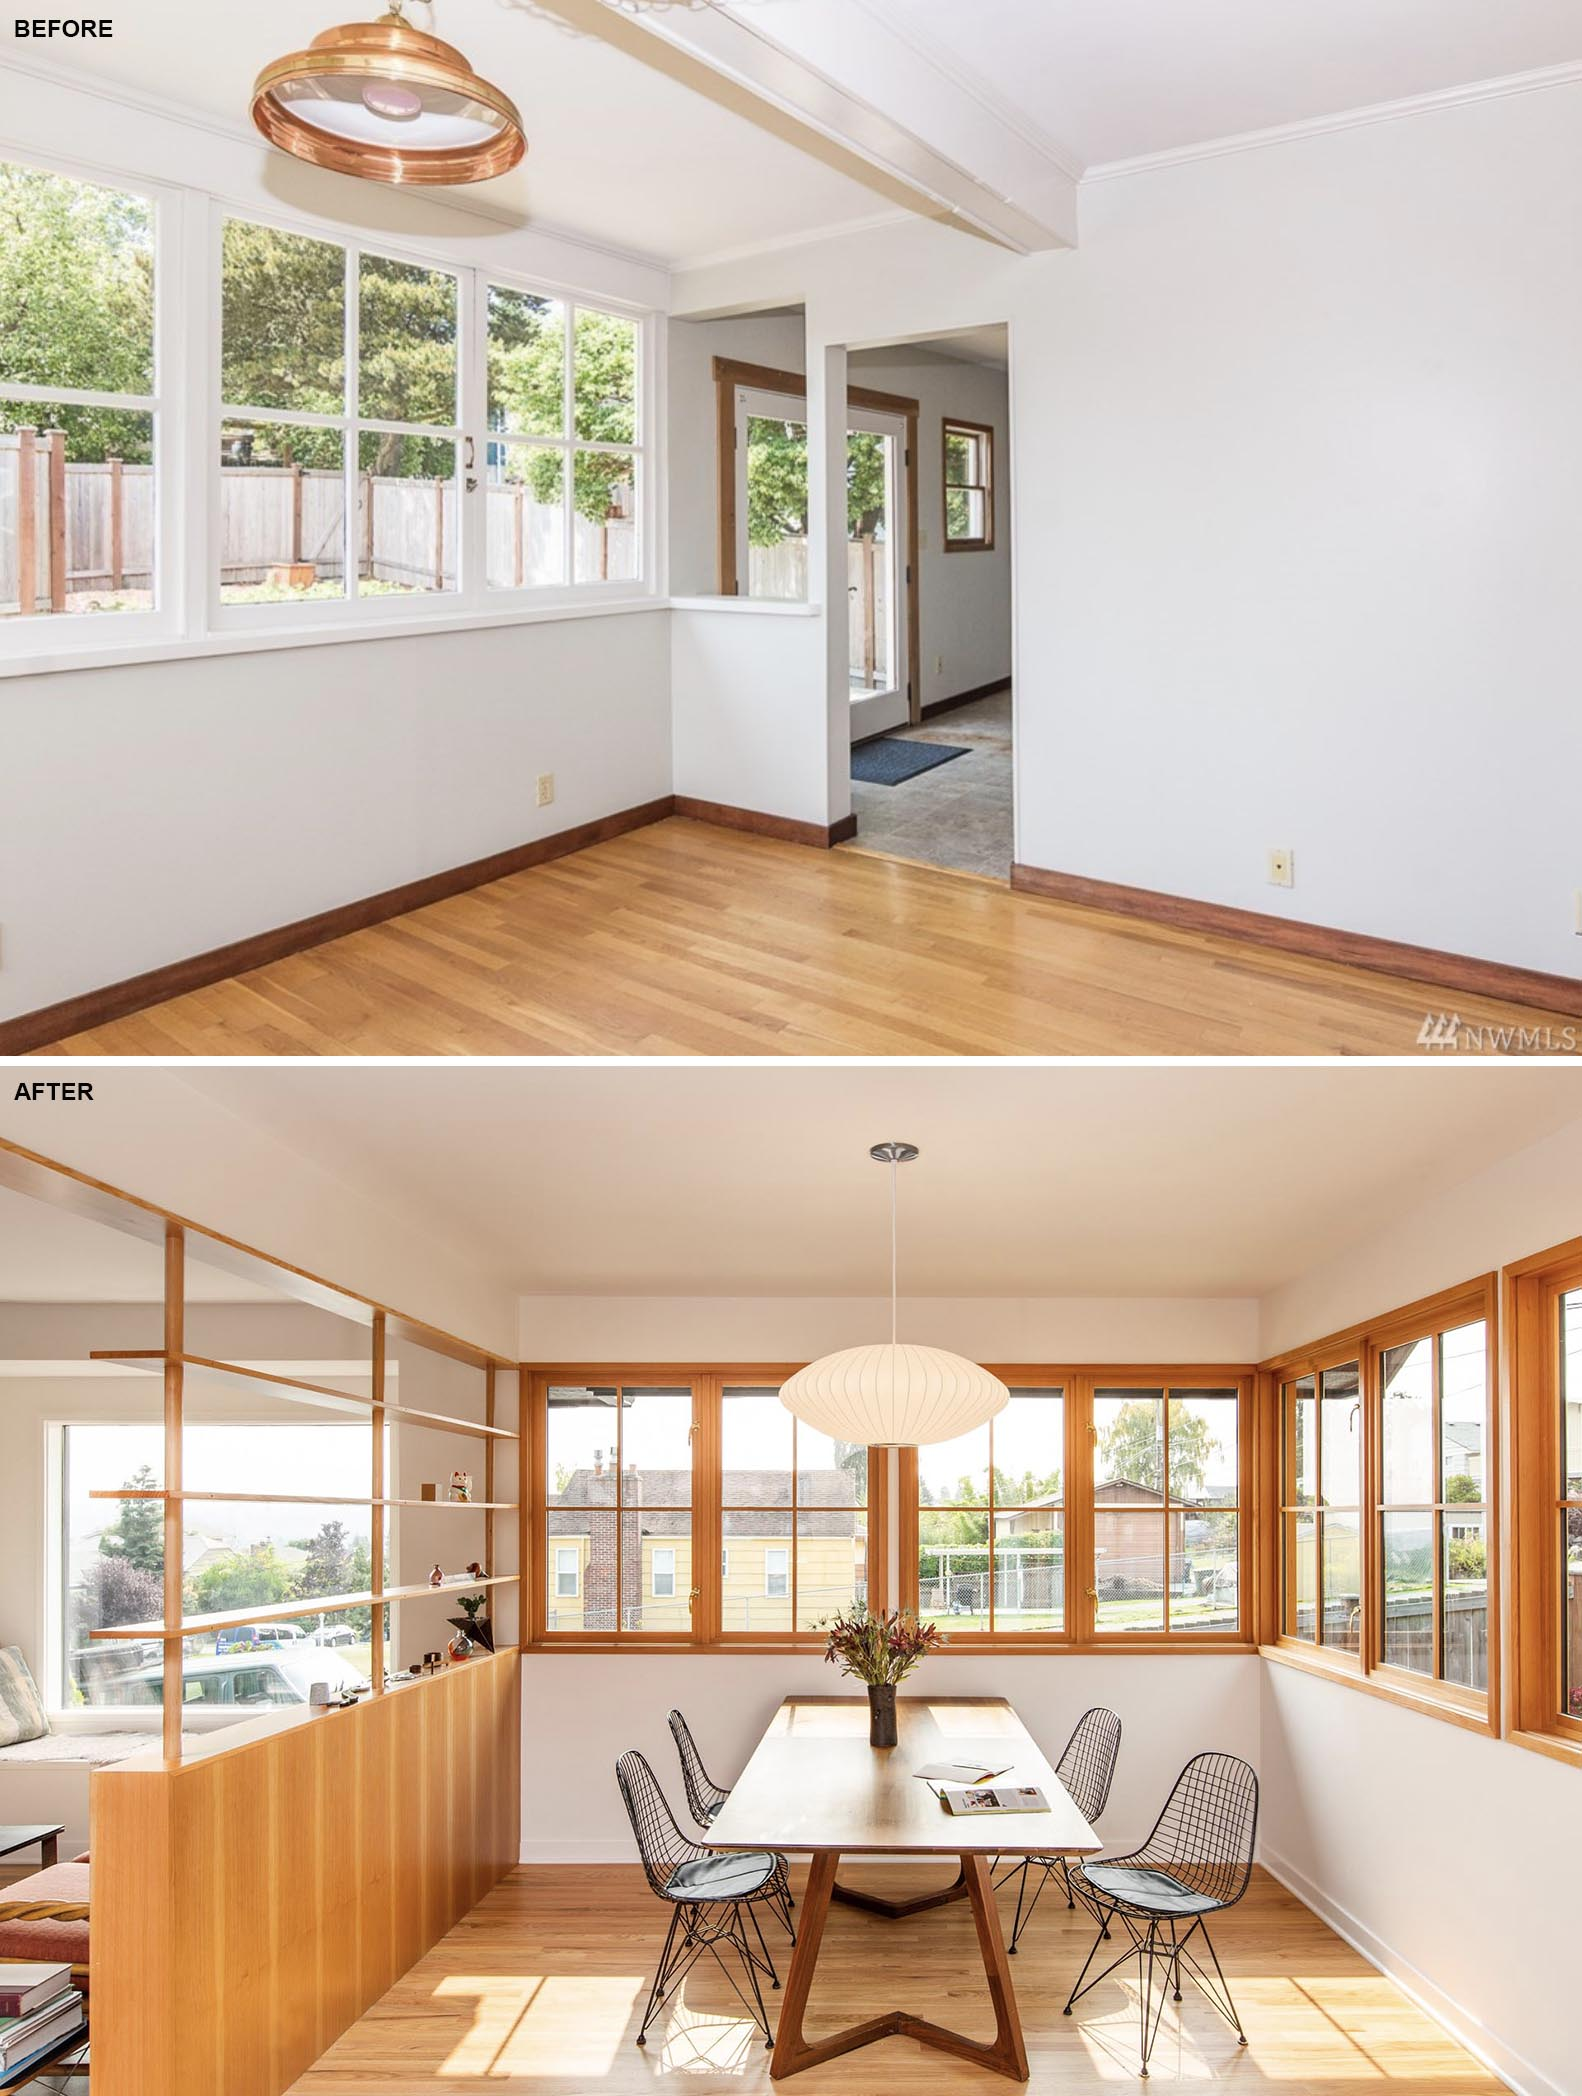 A dining room renovation that included removing the white window frames and replacing them with wood ones.